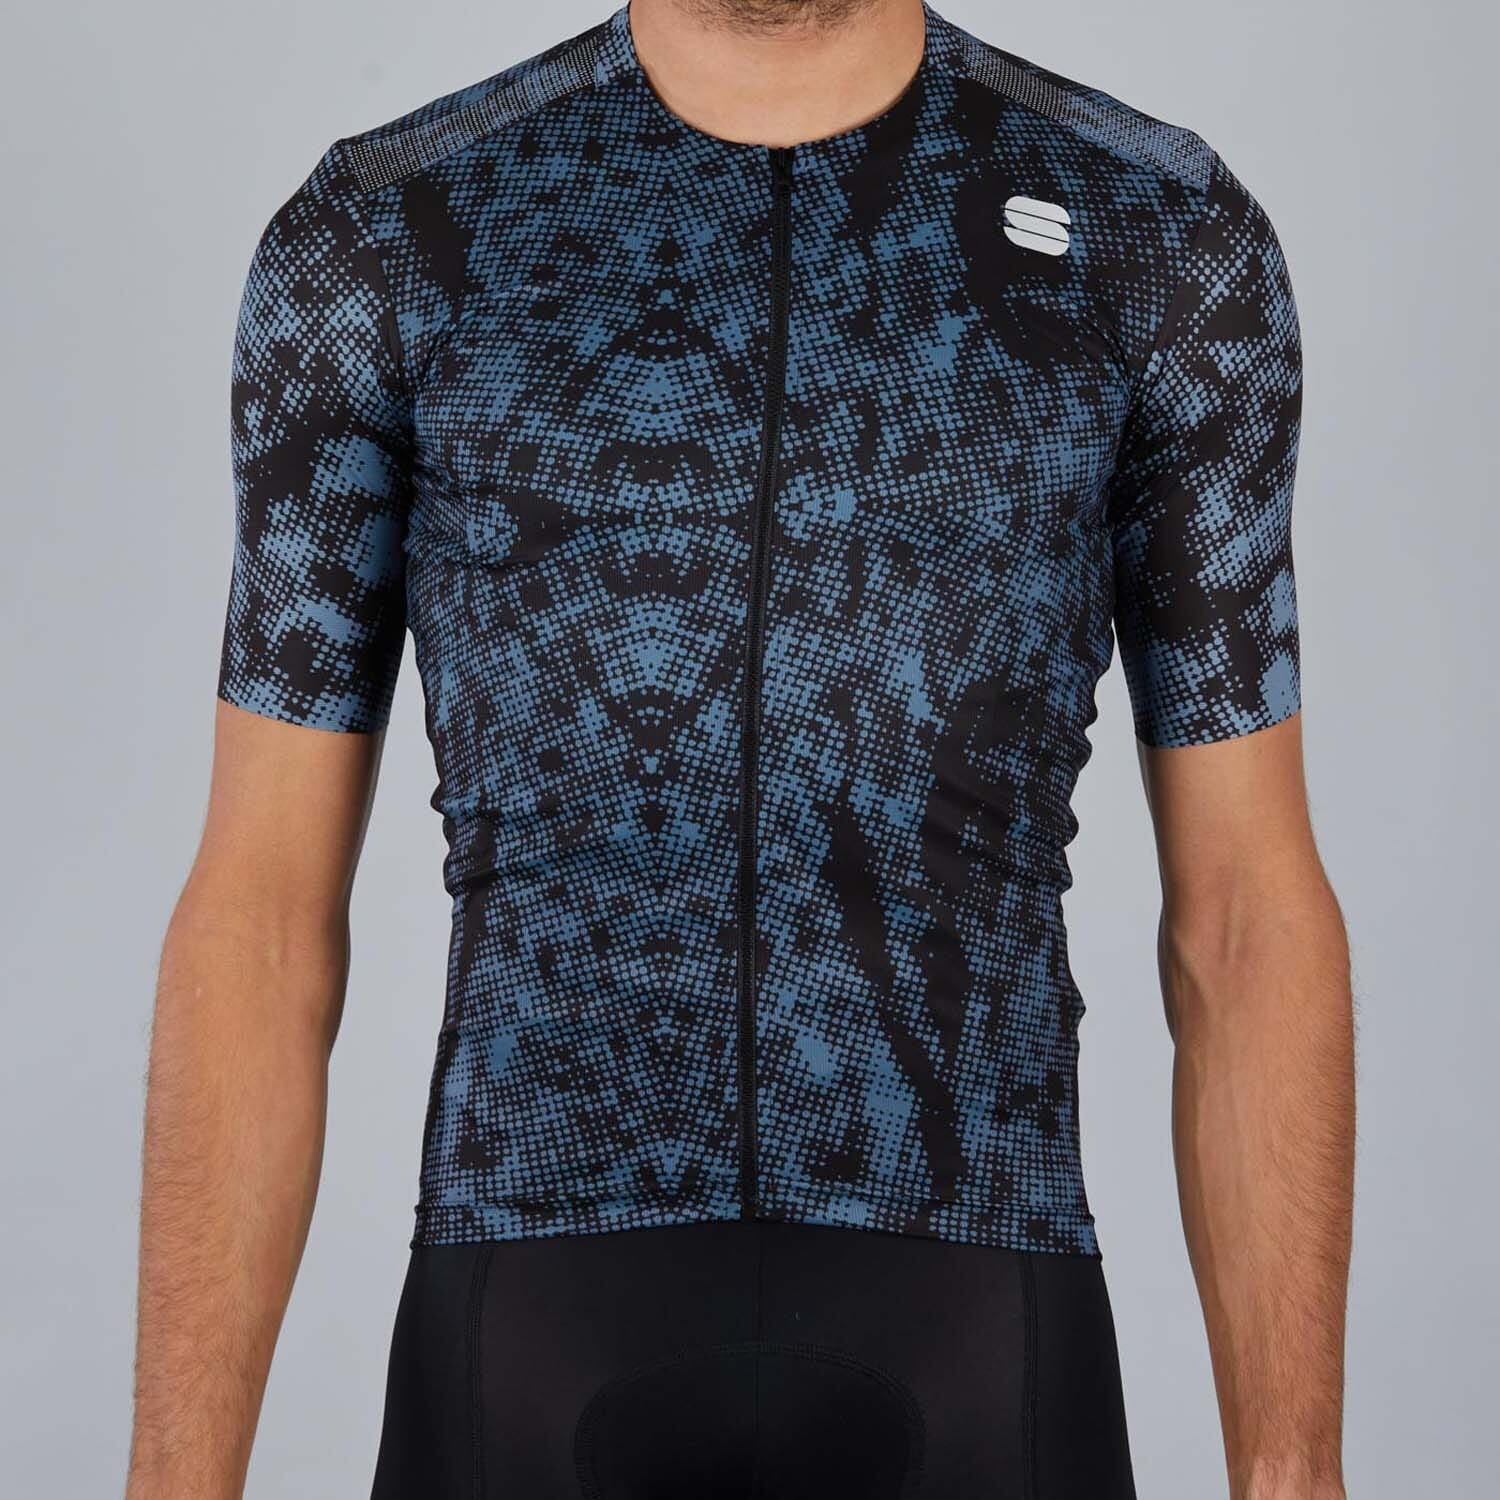 Sportful-Sportful Escape Supergiara Jersey-Black-S-SF210240022-saddleback-elite-performance-cycling